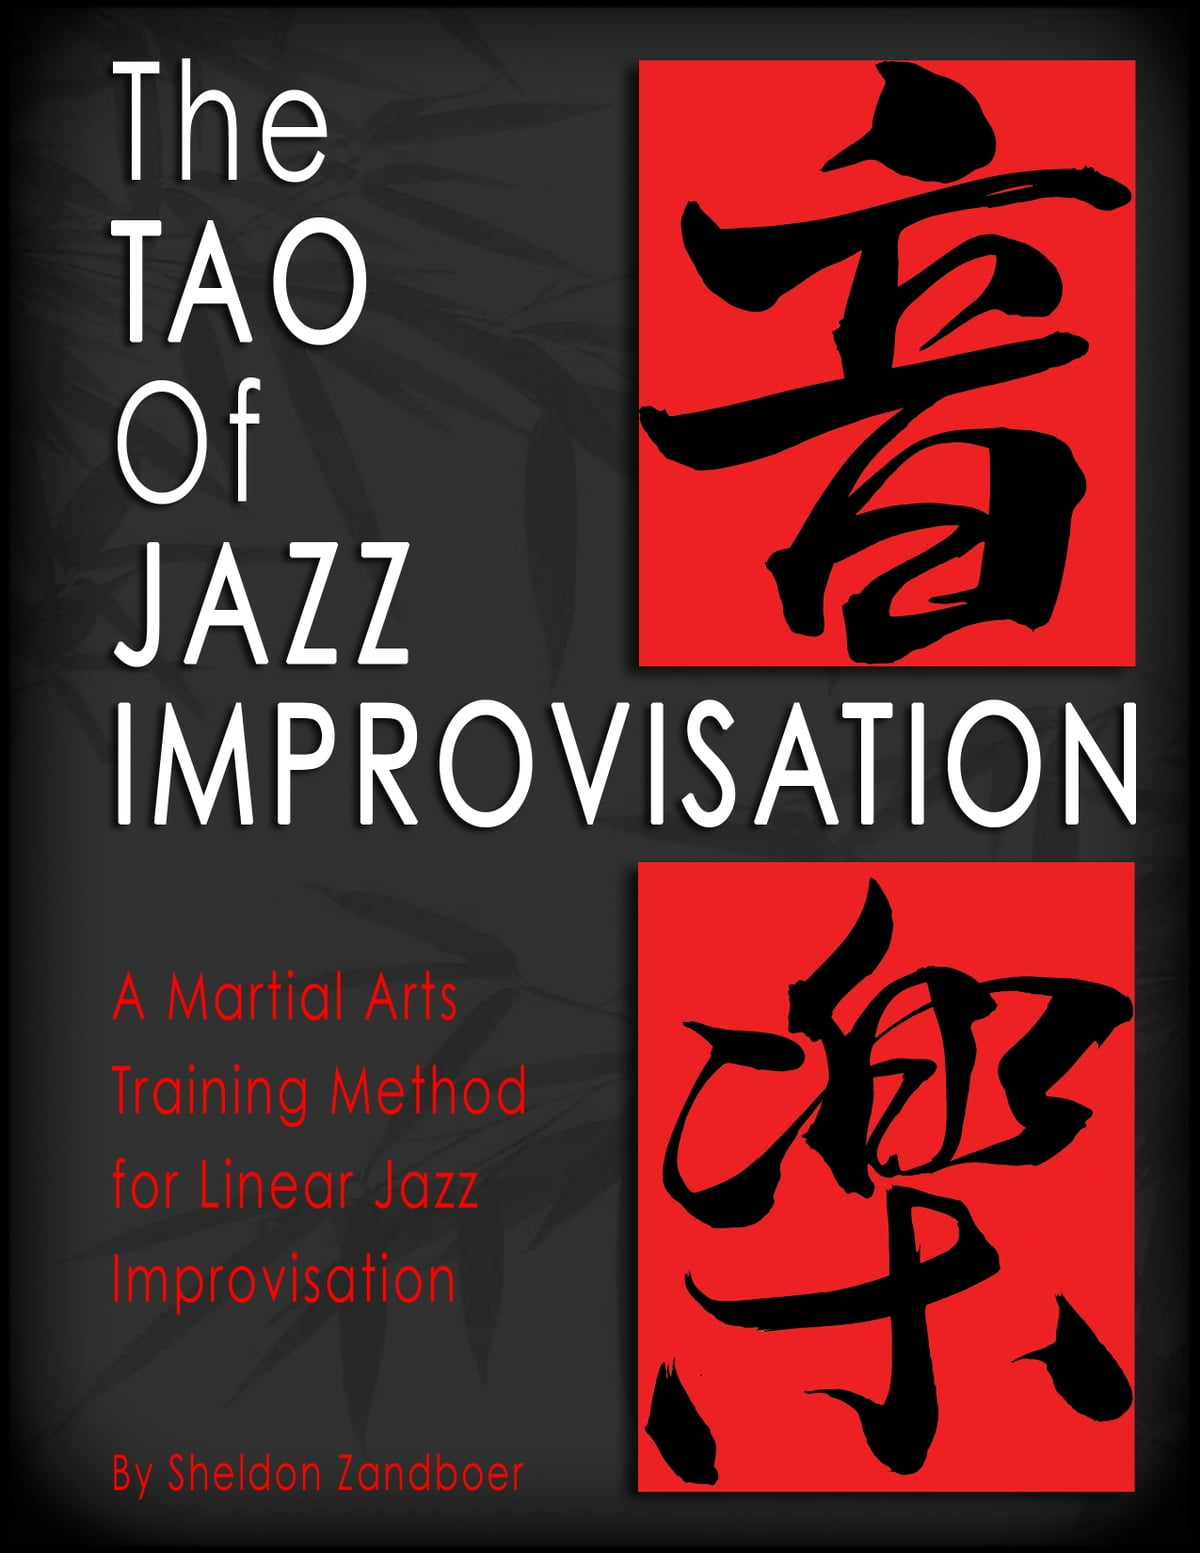 The Tao Of Jazz Improvisation Ebook By Sheldon Zandboer  9781483559247   Rakuten Kobo